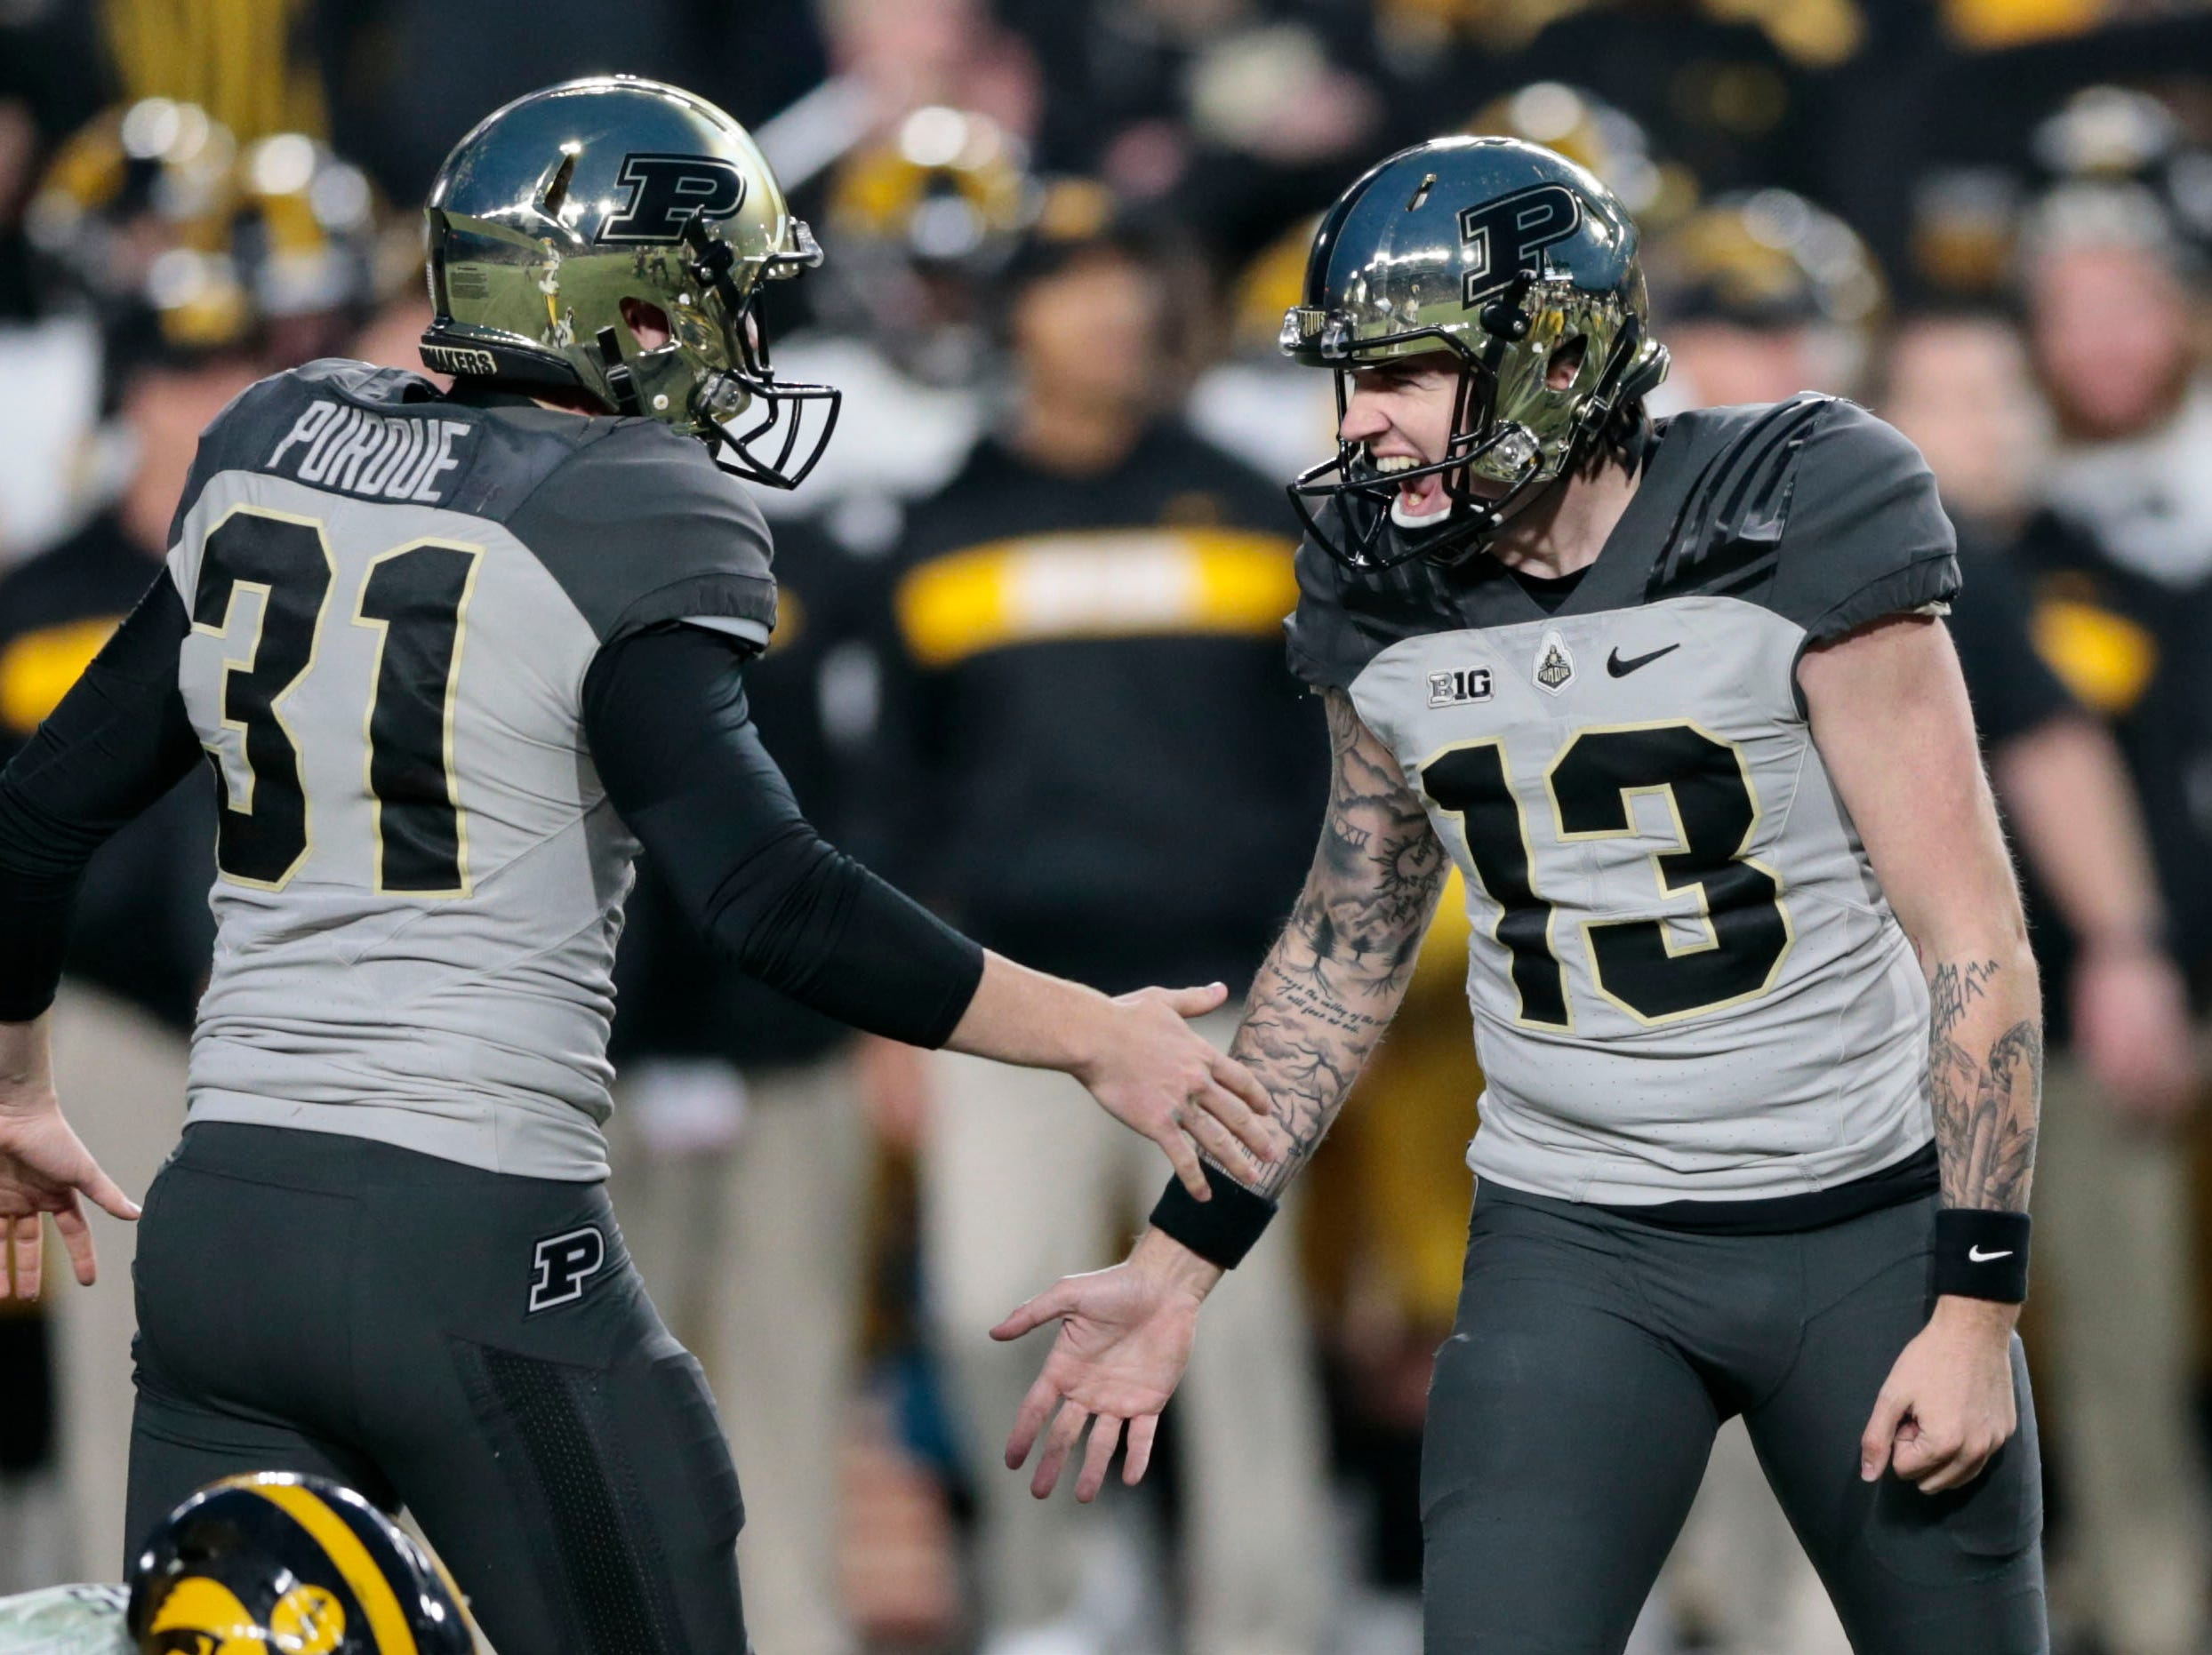 Purdue placekicker Spencer Evans (13) is congratulated by punter Joe Schopper (31) after booting the winning field goal in the fourth quarter of an NCAA college football game against Iowa in West Lafayette, Ind., Saturday, Nov. 3, 2018.